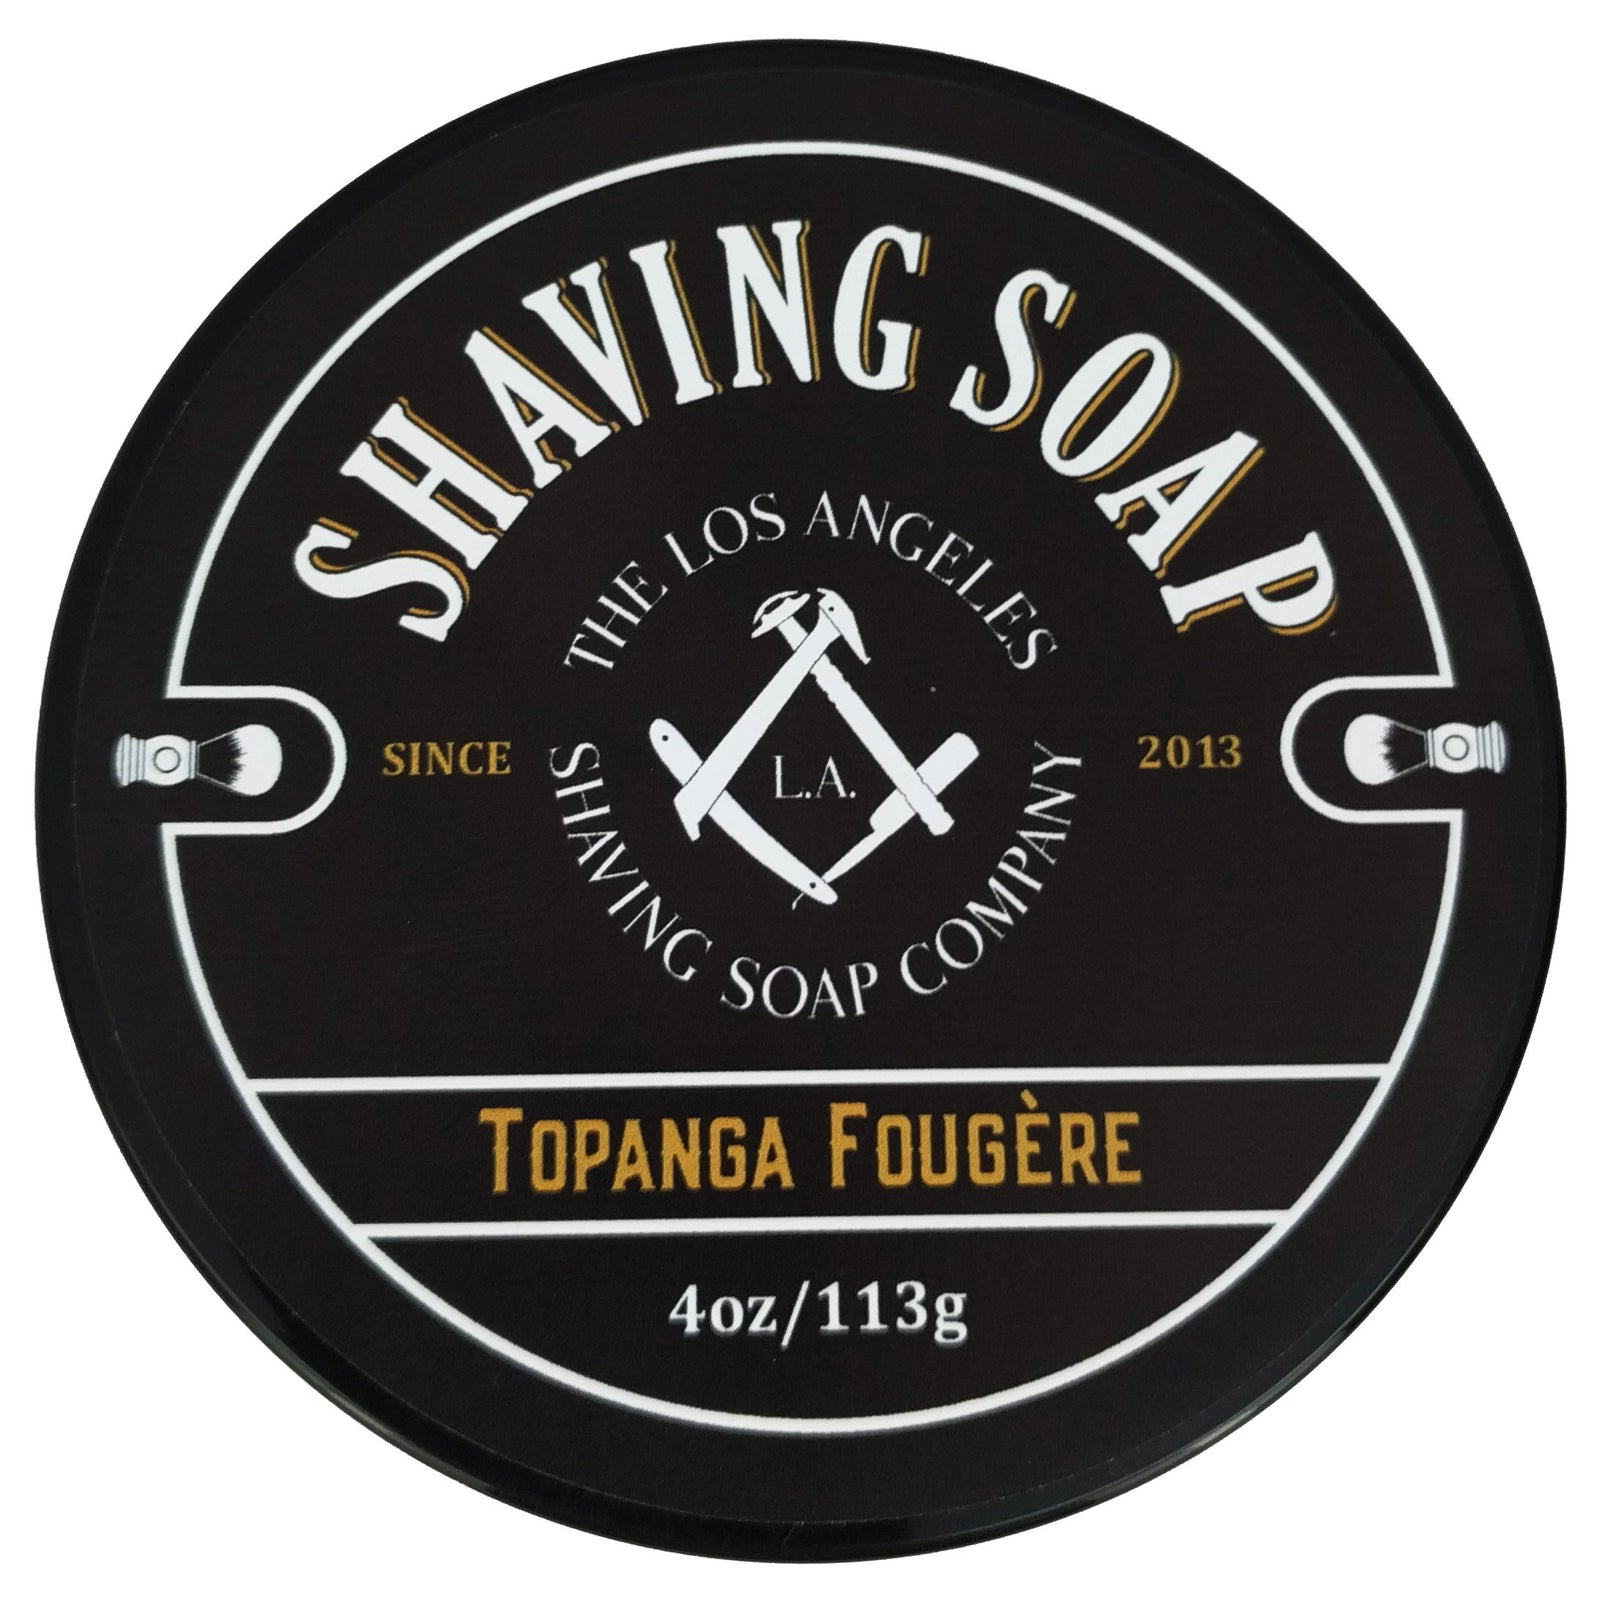 LA Shaving Soap Co - Topanga Fougère Shaving Soap